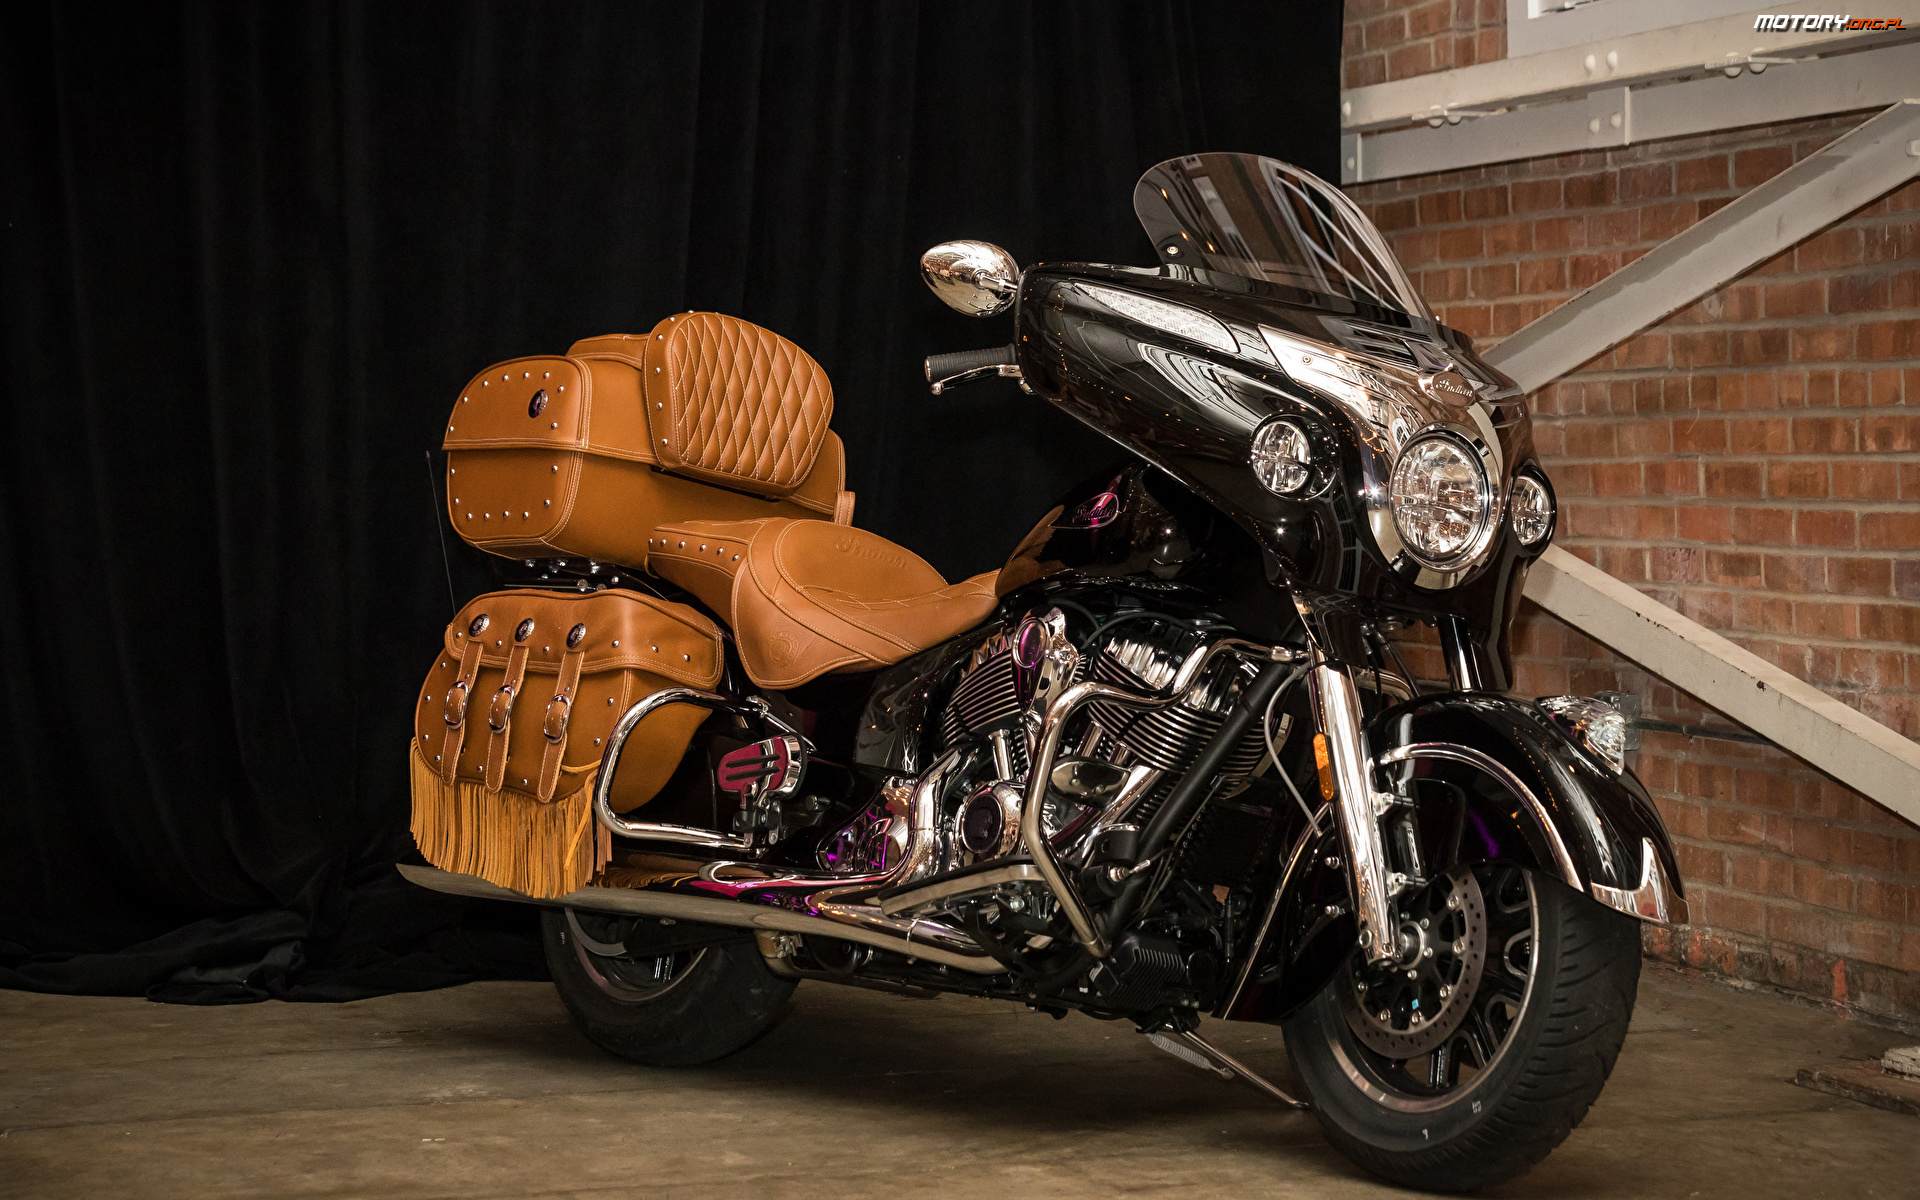 Roadmaster Classic, Kufer, Indian Motorcycle, Skórzany